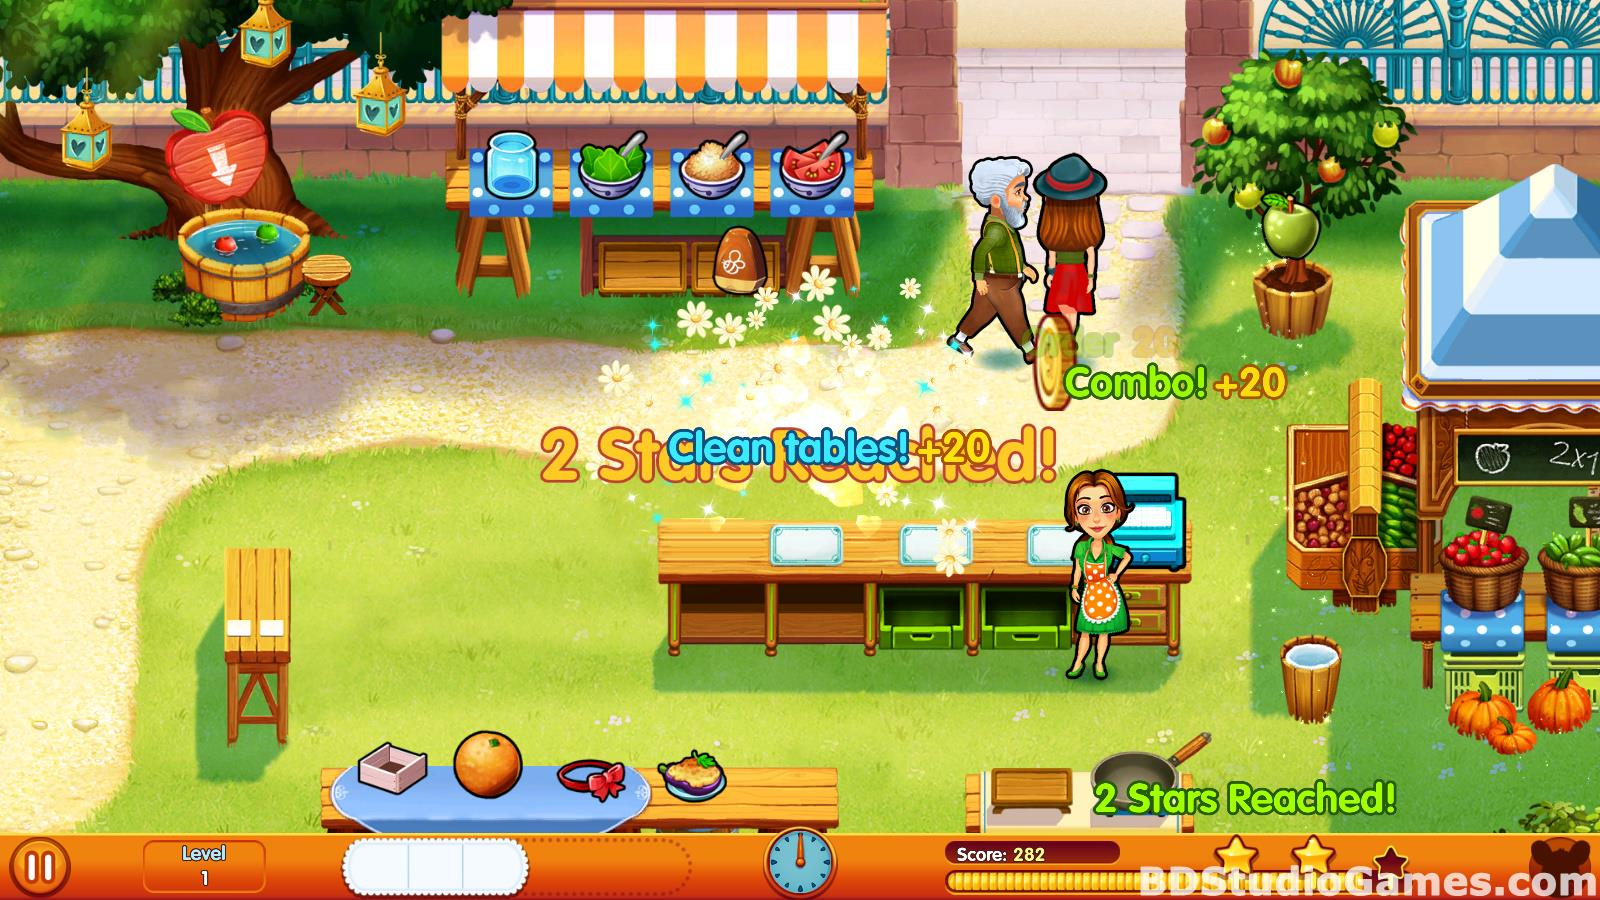 Delicious: Emily's Road Trip Collector's Edition Free Download Screenshots 09